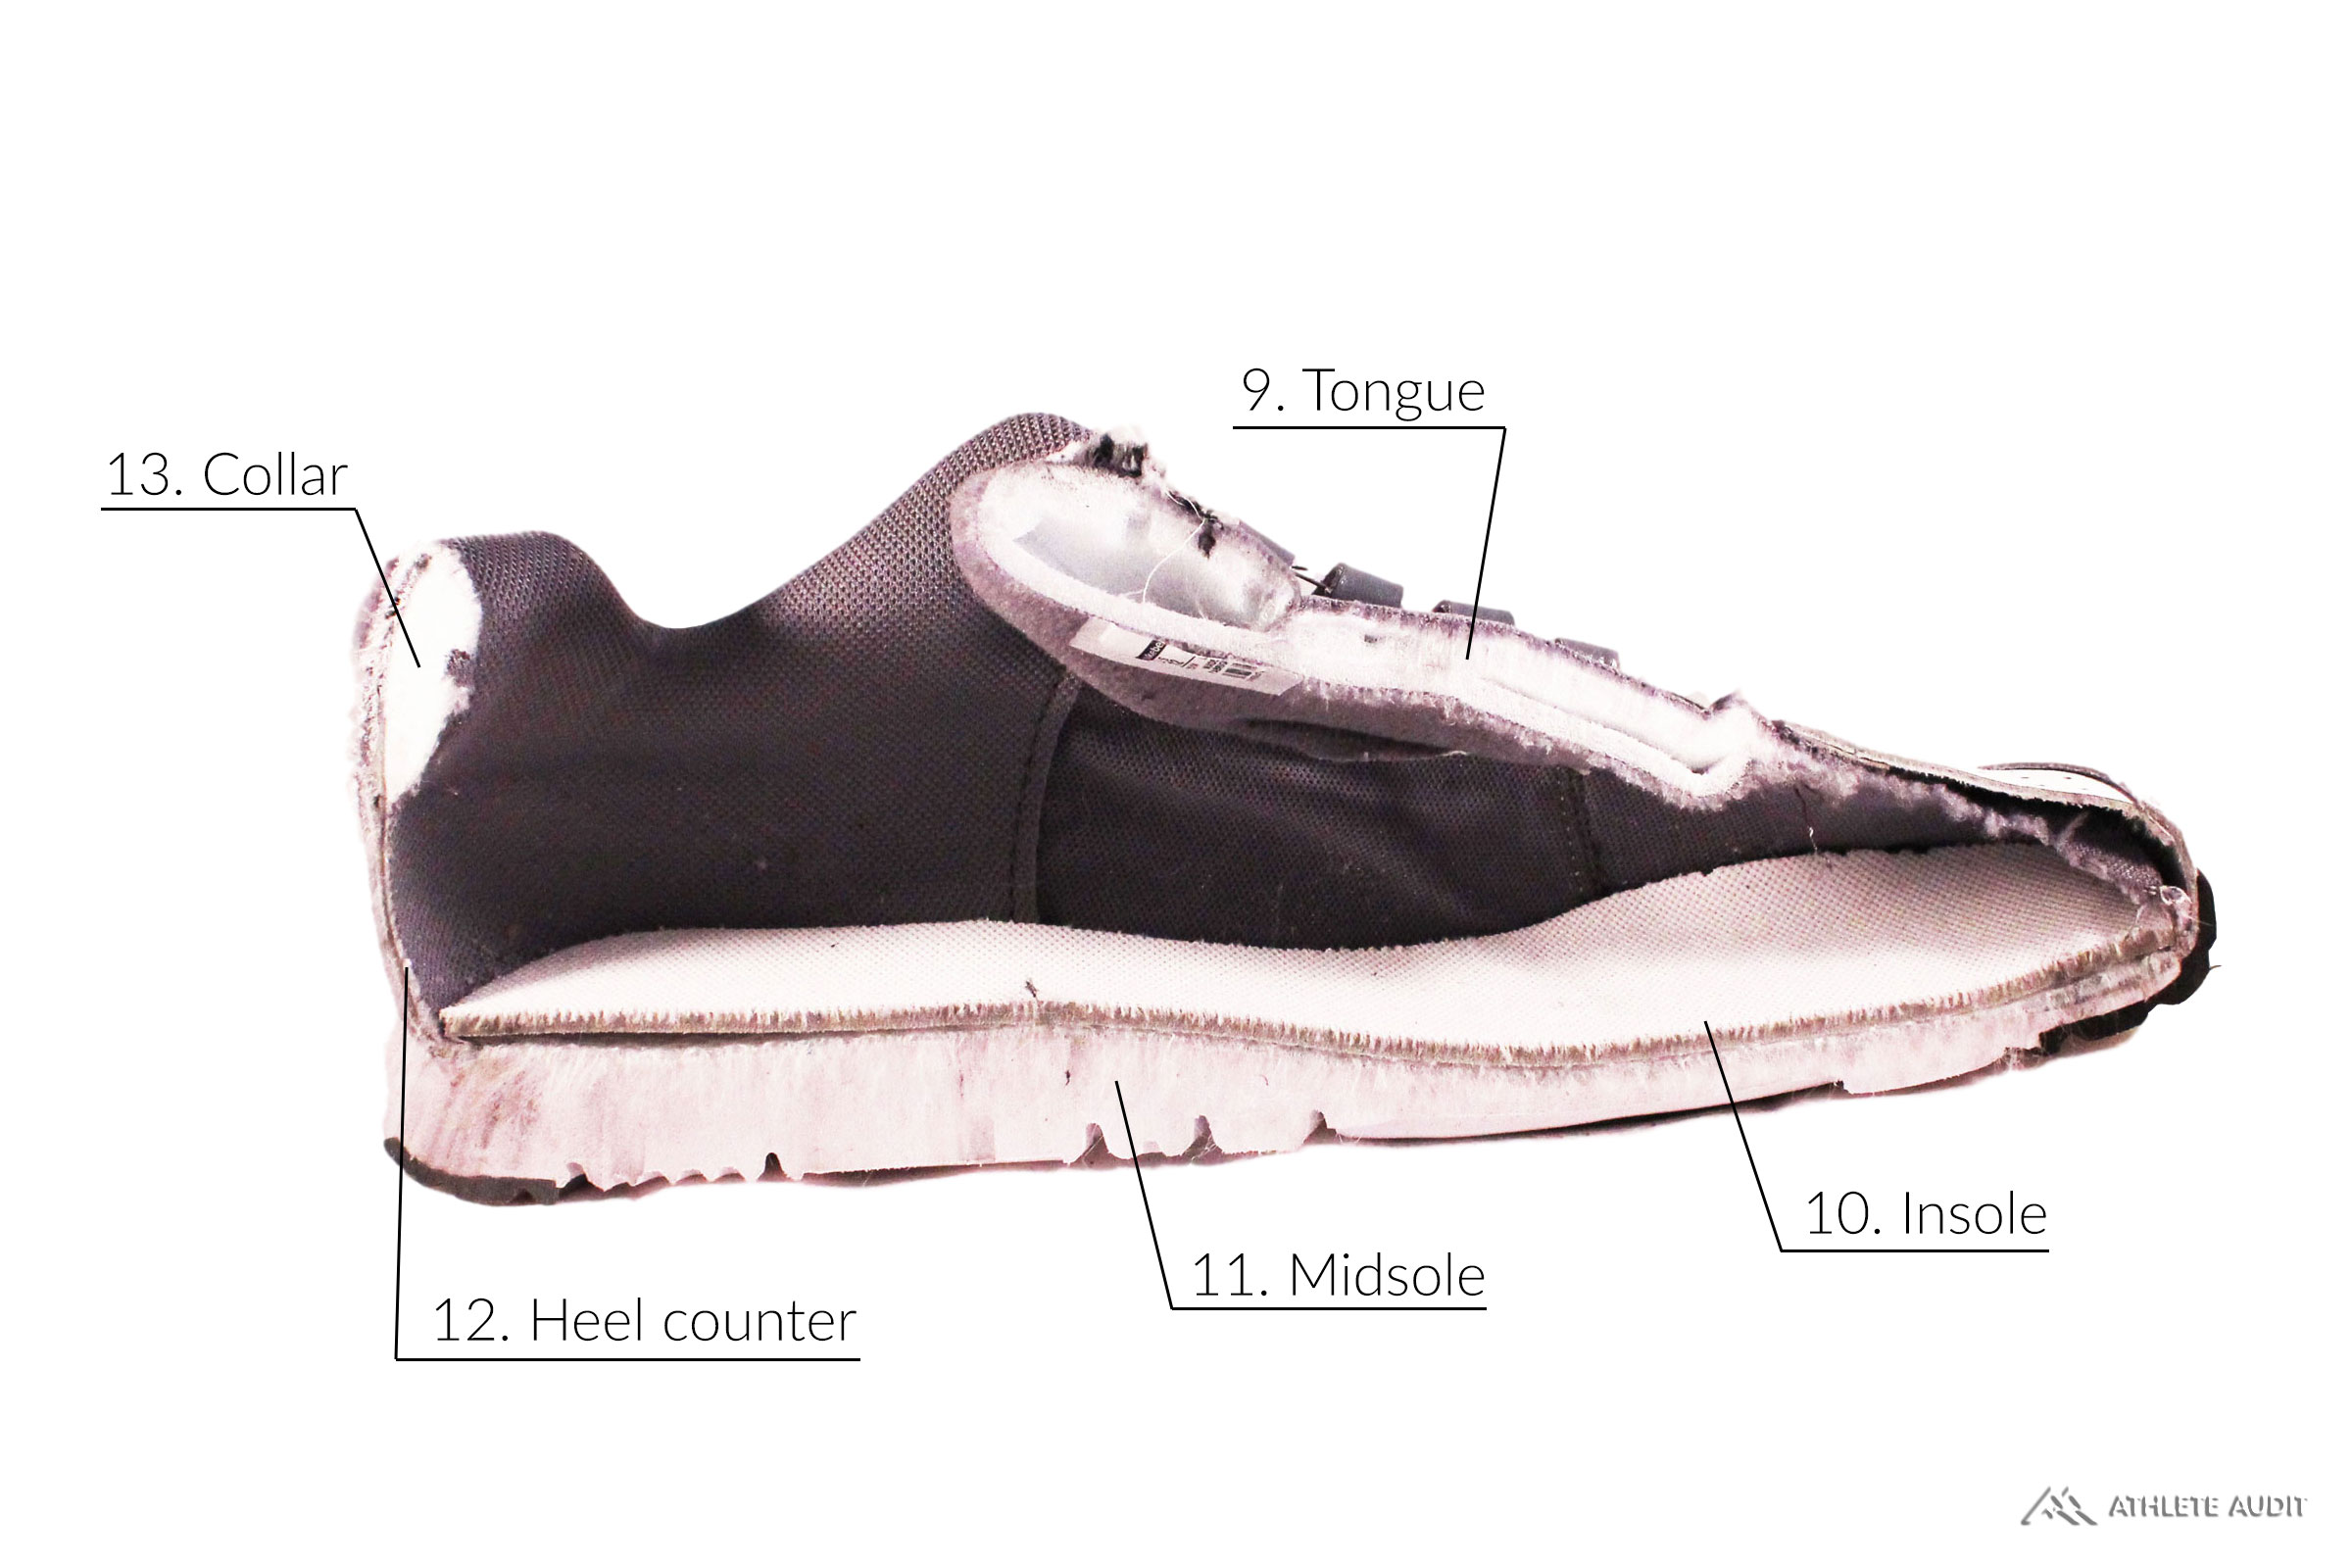 Parts of a Tennis Shoe - Inside - Anatomy of an Athletic Shoe - Athlete Audit